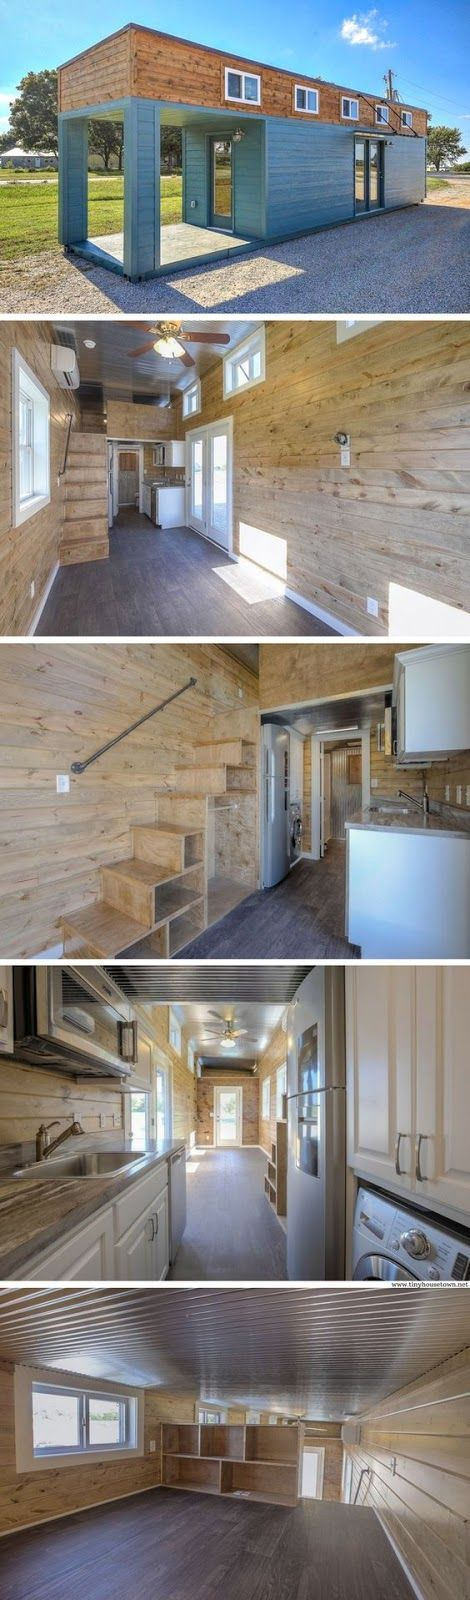 40′ Container home with front porch   312 Sq. Ft.   For Sale! I really like the porch on this one!       Check It Out Here!    SourceTiny ...